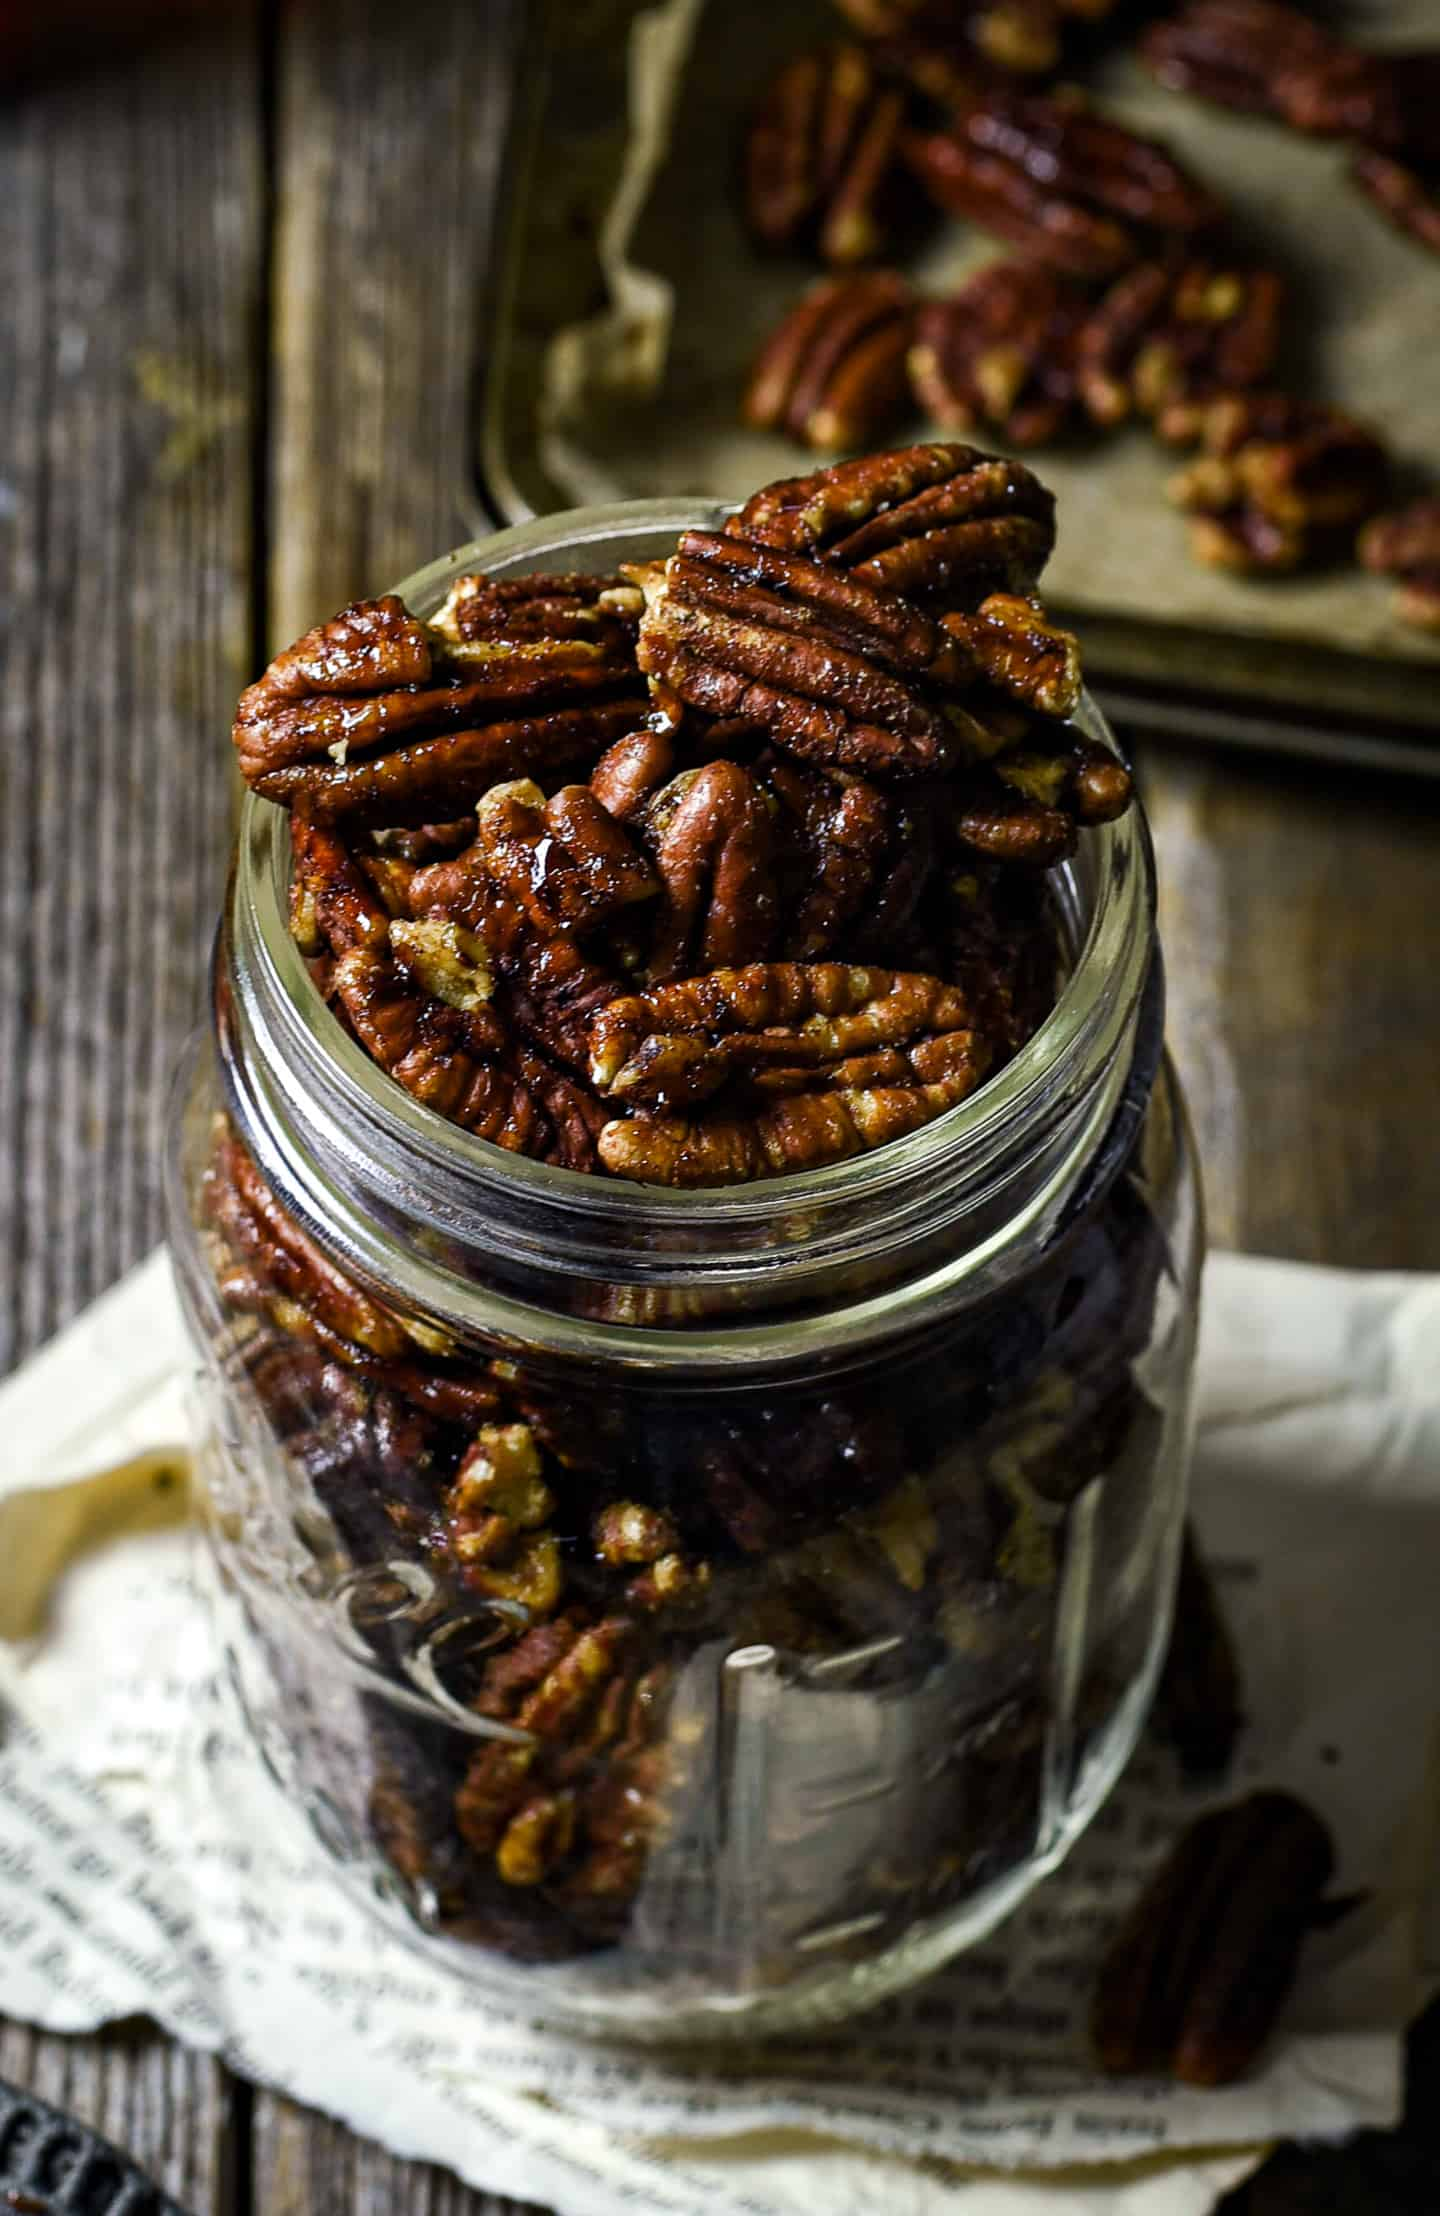 Candied pecans in glass.